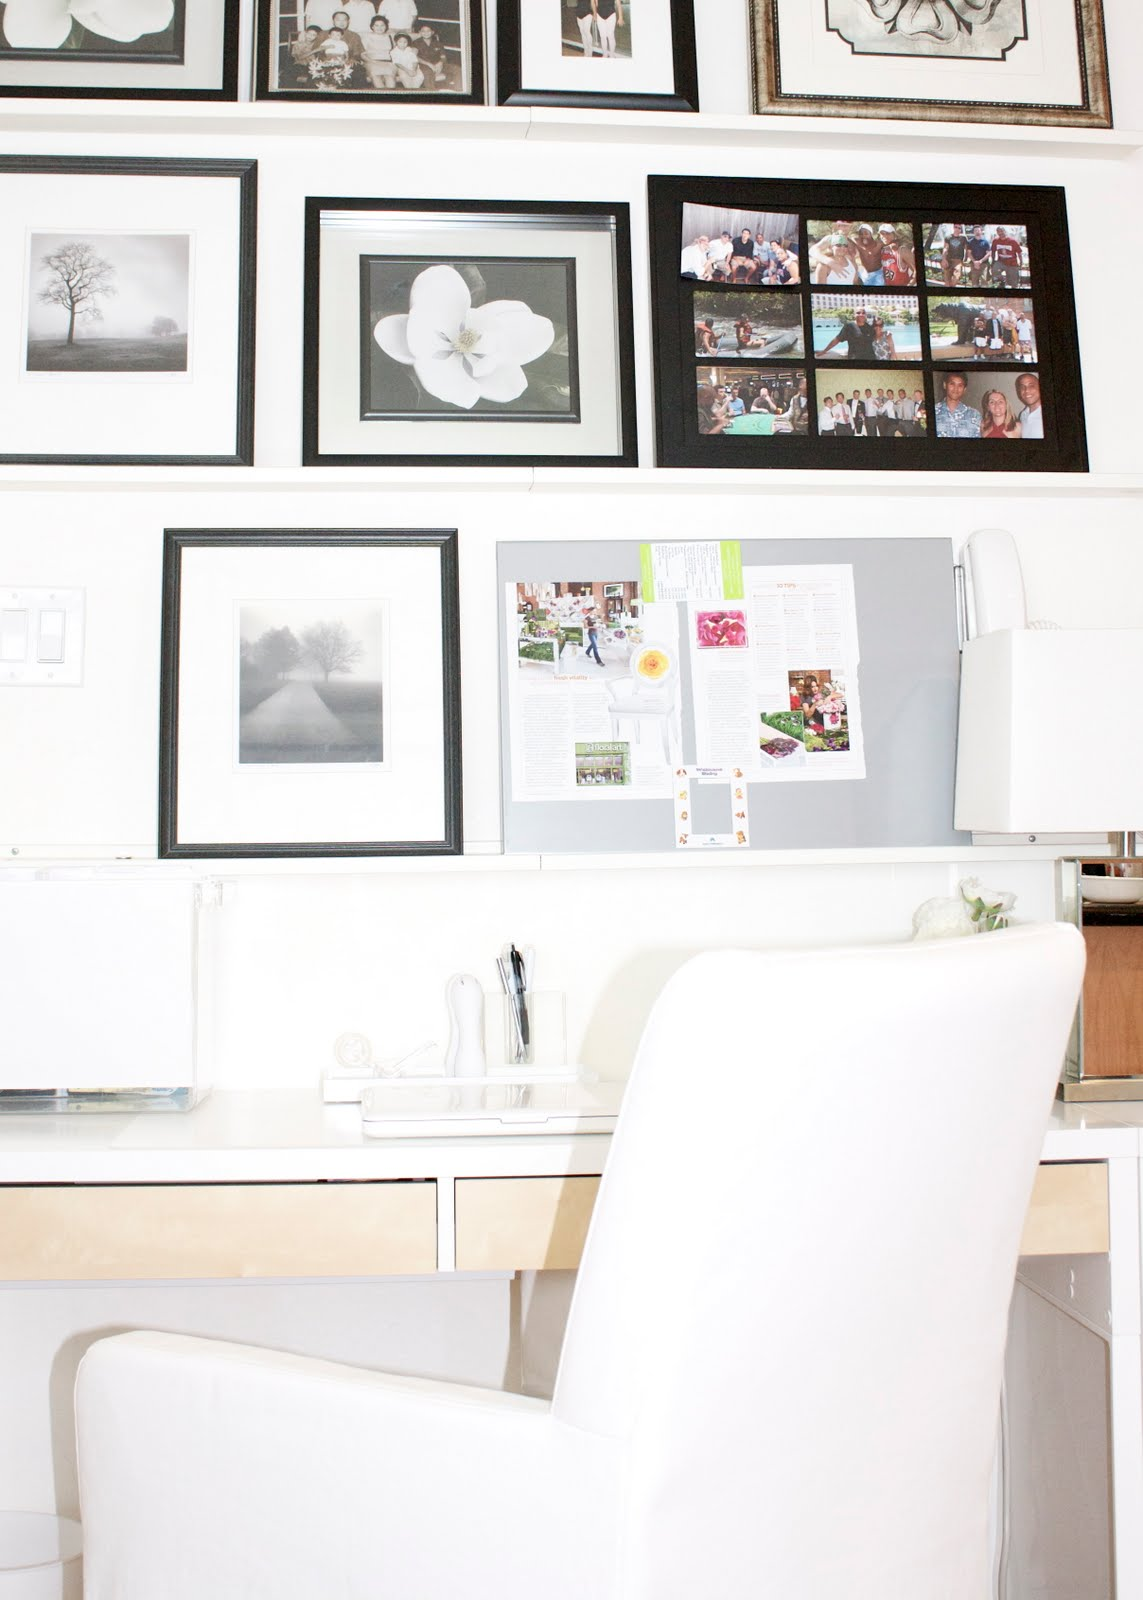 In With The New: Organized Office | Craft and Couture